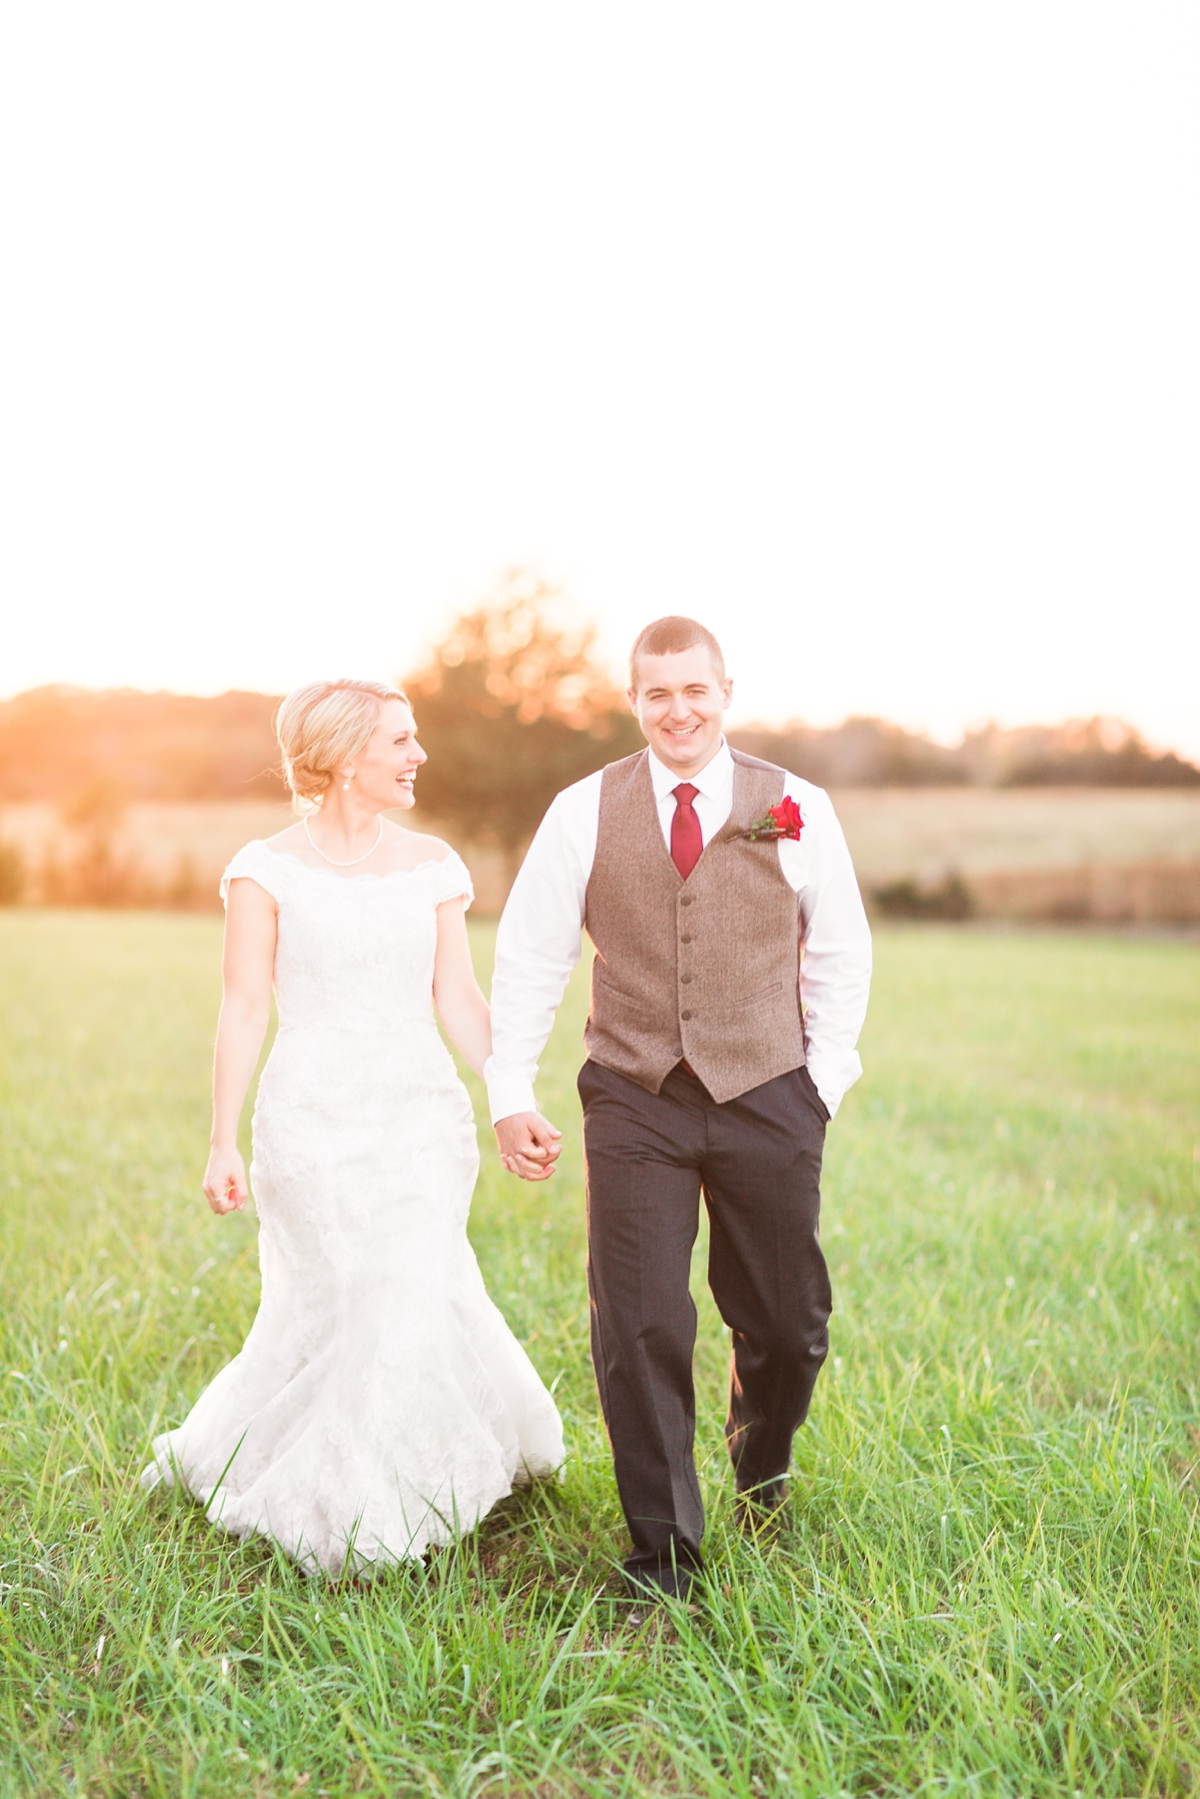 Perfect Evening Glow Bride and Groom Portraits. A Rustic Brandy Hill Farm Wedding in Culpeper, Virginia featuring accents of cranberry and gold! Photos by Katelyn James Photography